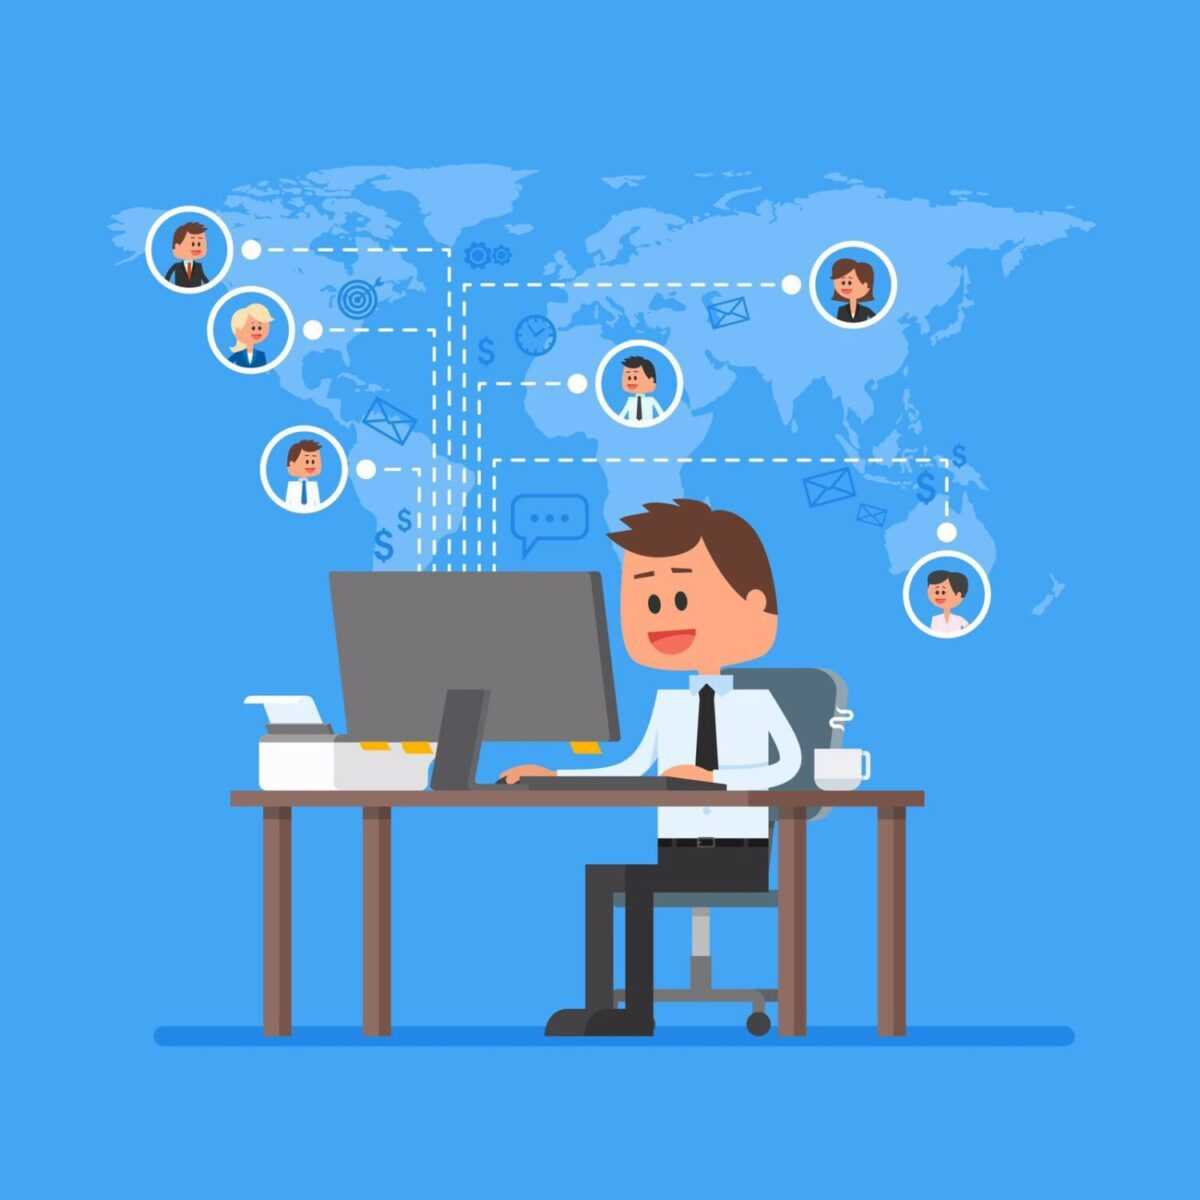 36e1a046 8a33 4850 b89d bc61afe2b936 - Do you know how outsourcing can speed up your business?